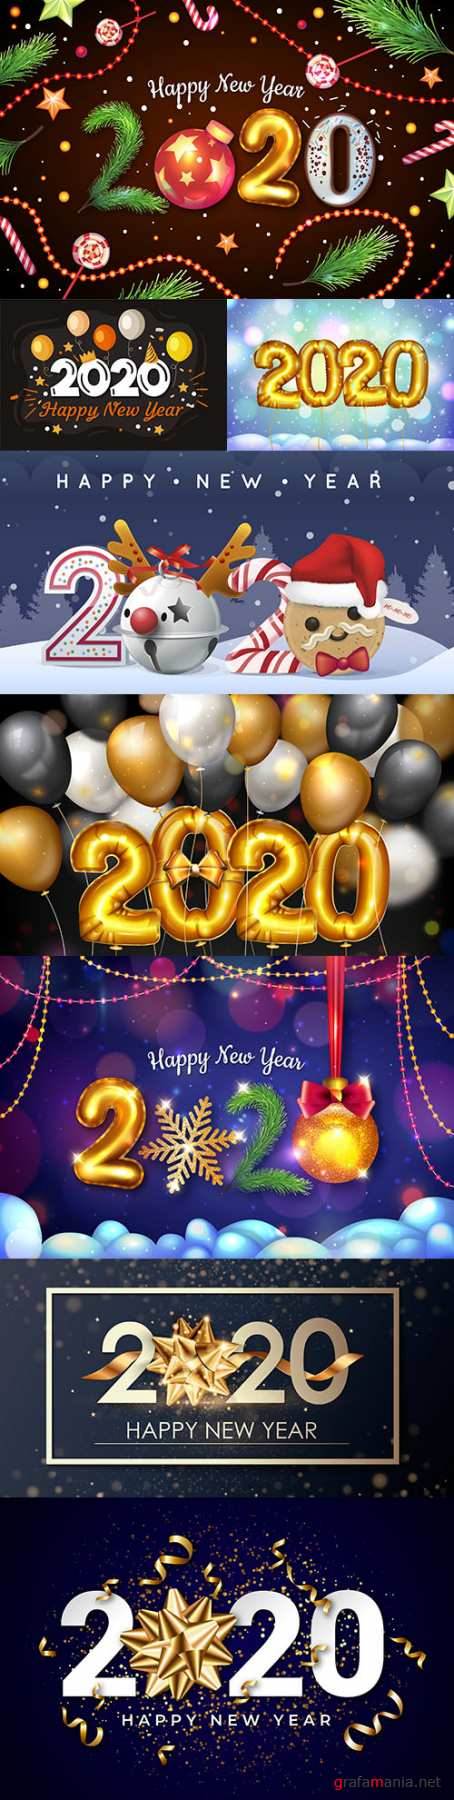 New Year and Christmas decorative 2020 illustration 18